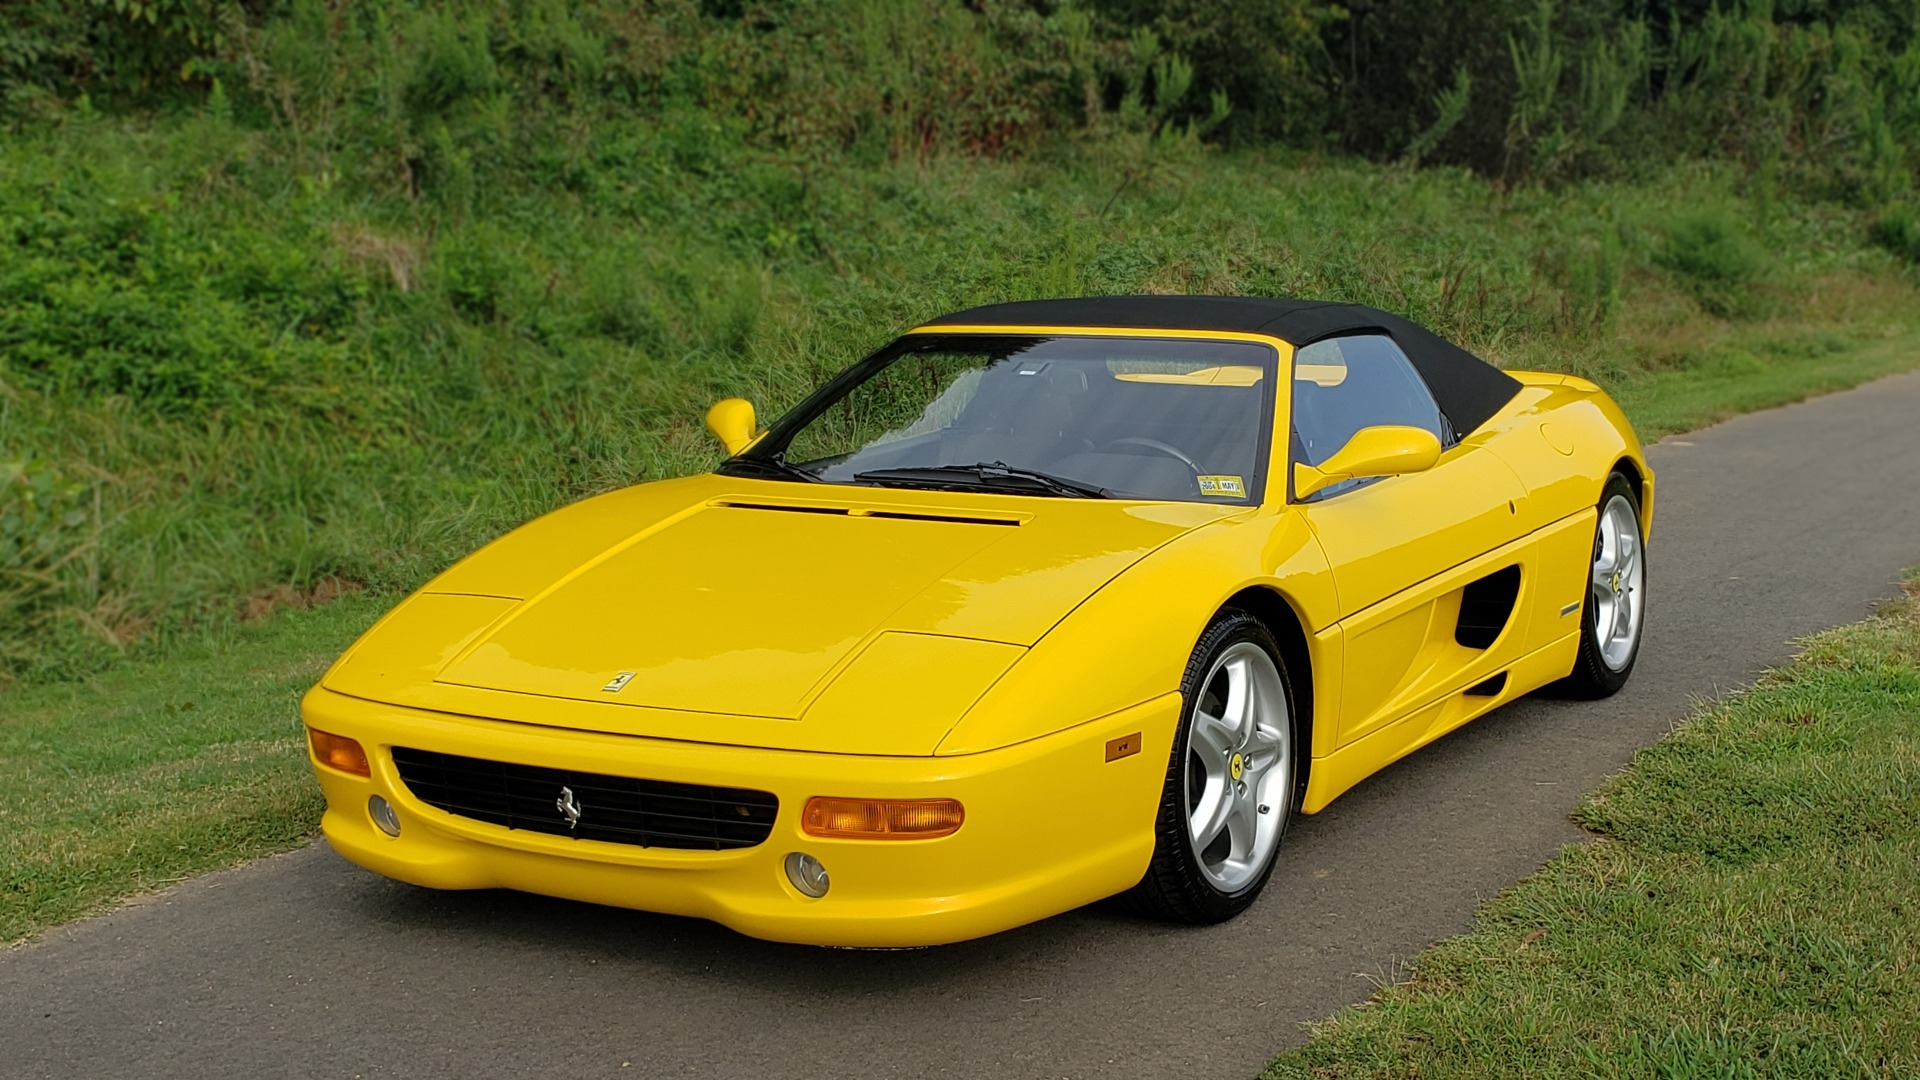 Used 1996 Ferrari F355 SPIDER / GATED 6-SPEED MANUAL / LOW MILES / NEW TIRES for sale $95,999 at Formula Imports in Charlotte NC 28227 6